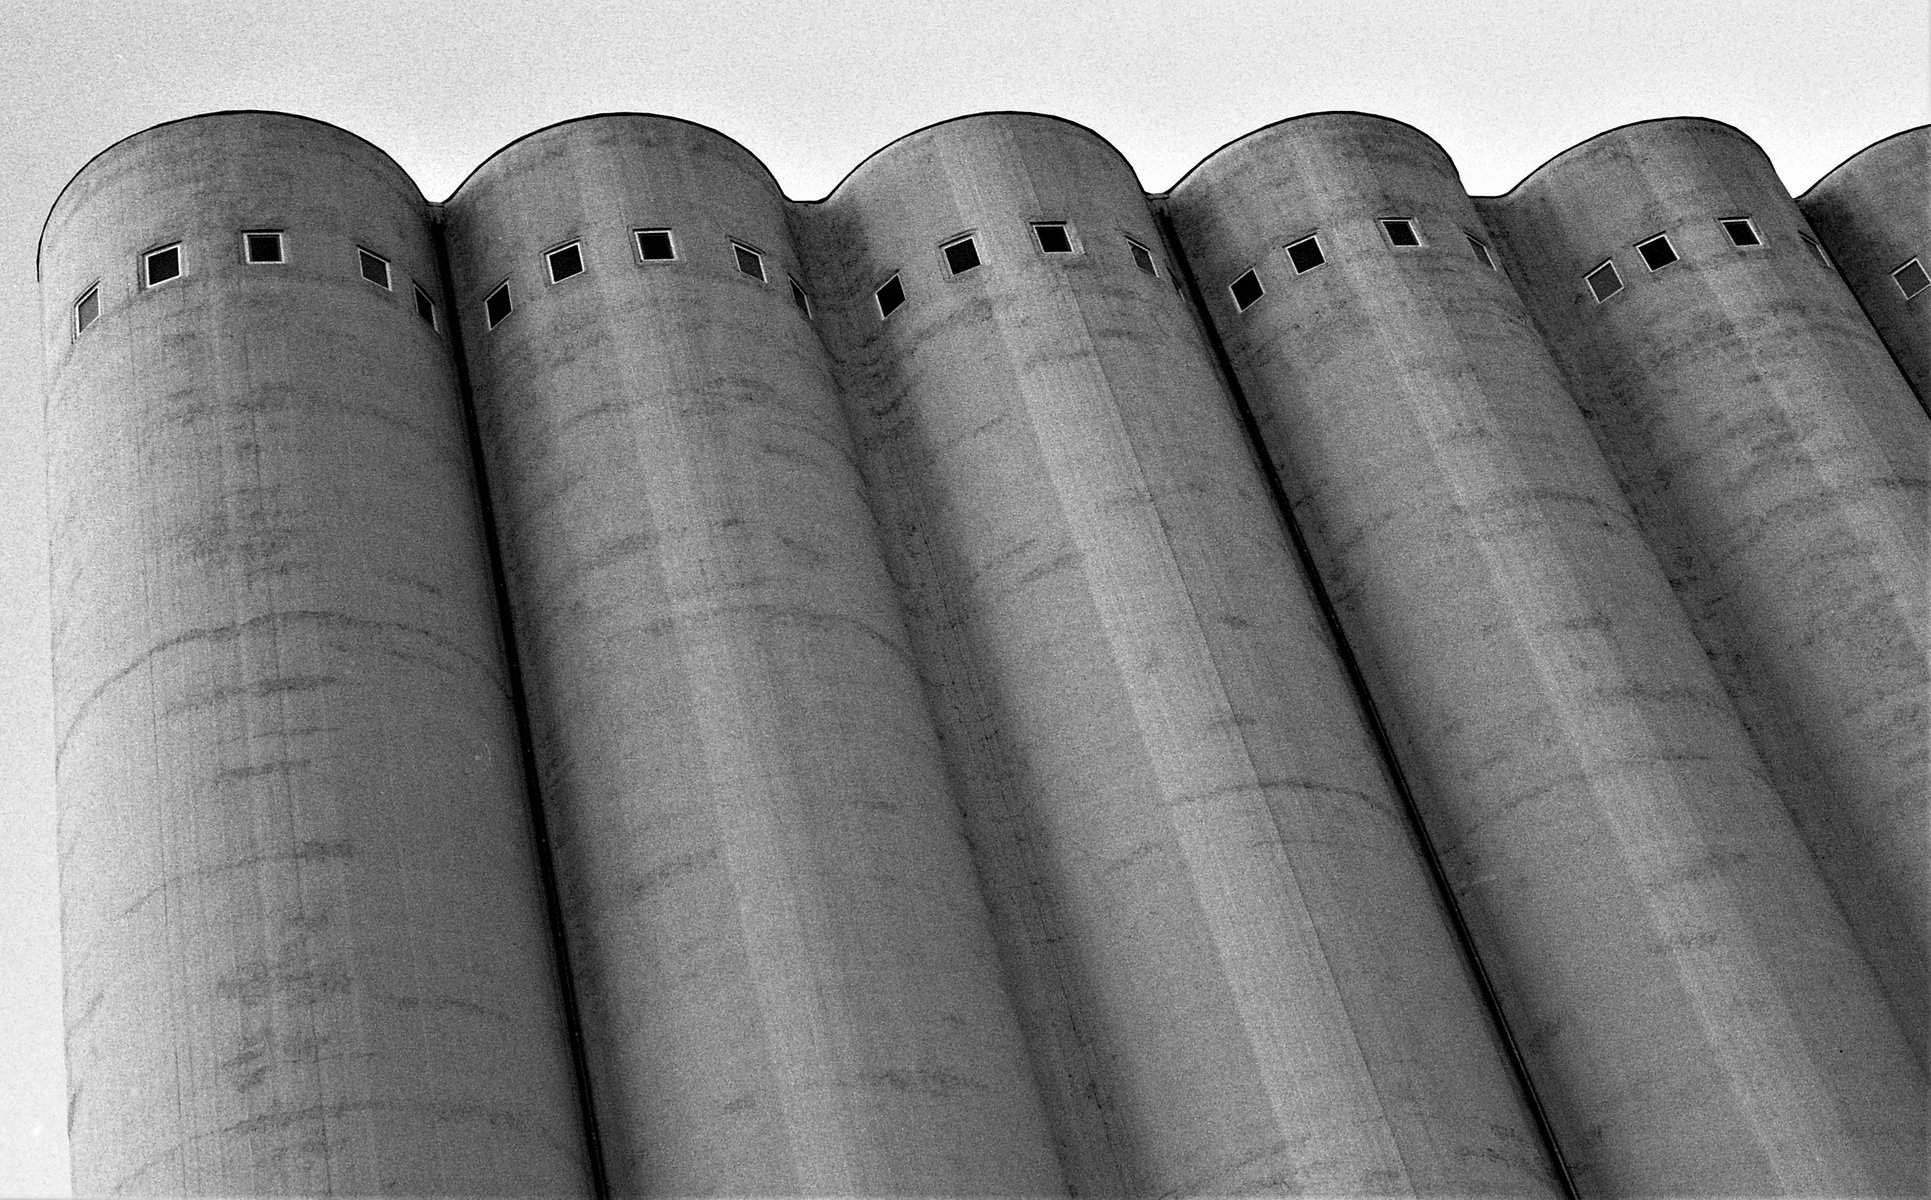 Jean-Pierre Damen urban and street photography - 1_Silo 1.jpg